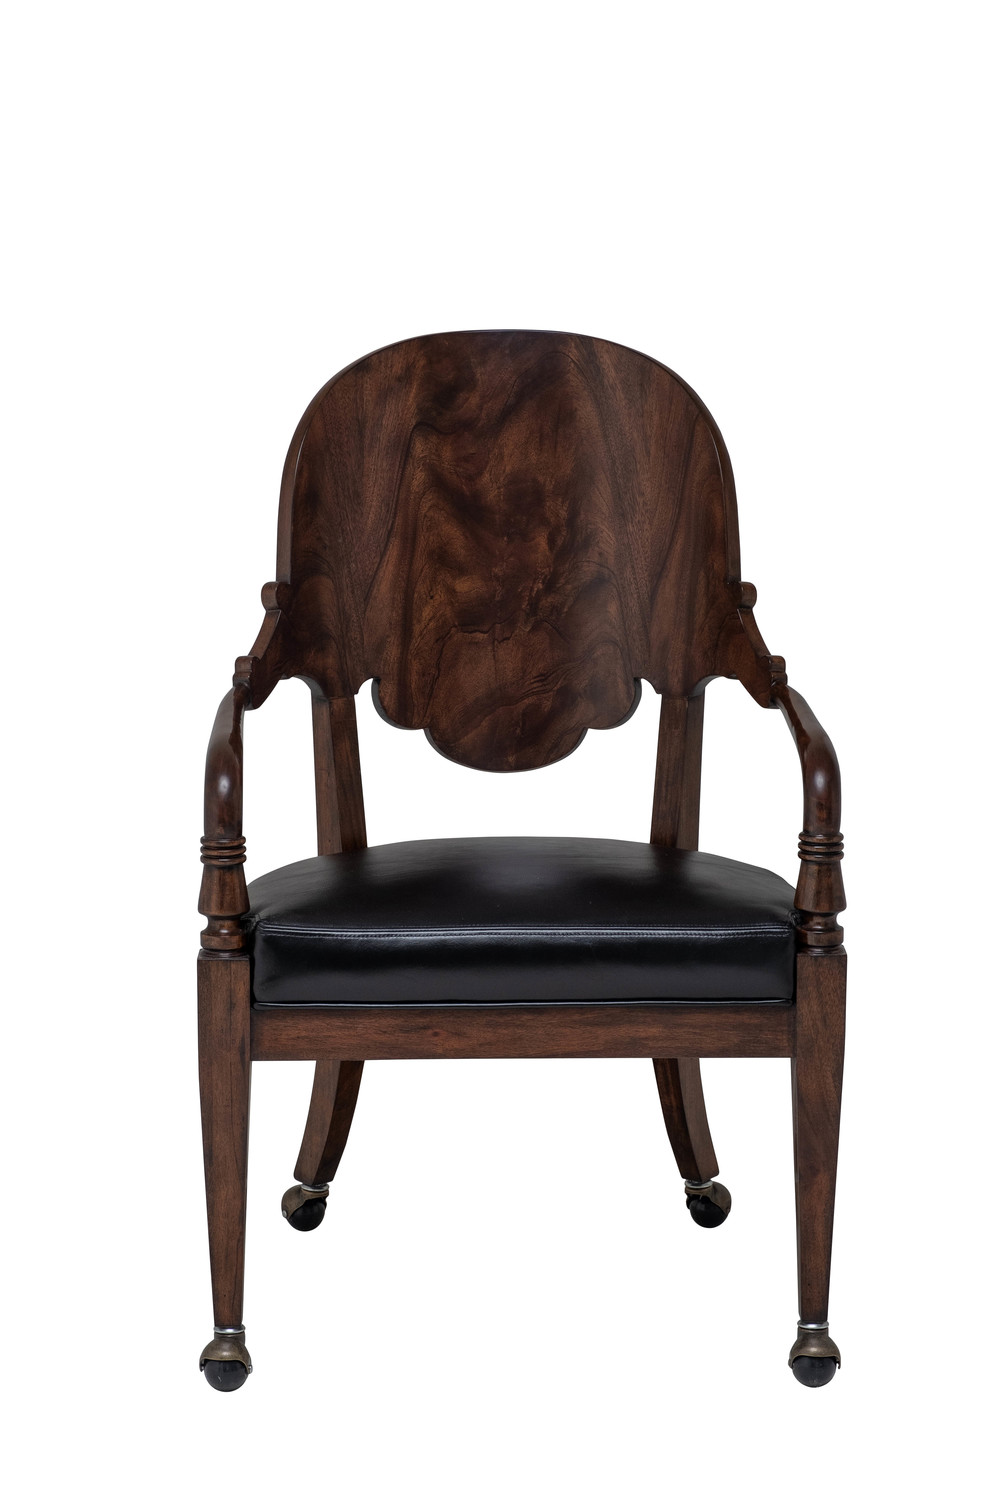 Maitland-Smith - Espresso Neoclassical Mahogany Game Chair with Black Leather Upholstery